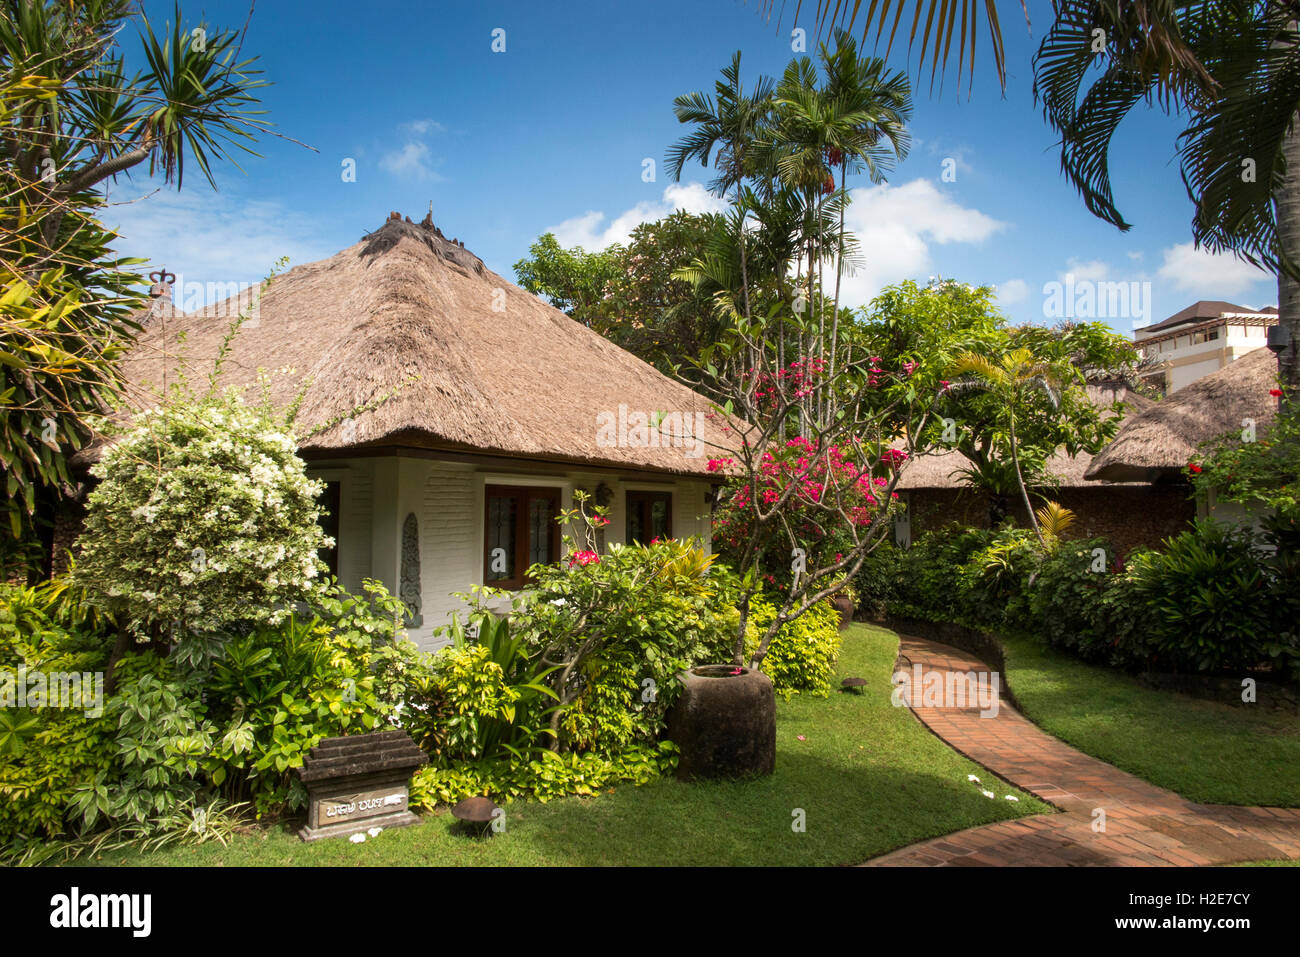 Indonesia Bali Kuta Poppies Gang 1 Cottages Tourist Cottage In Garden